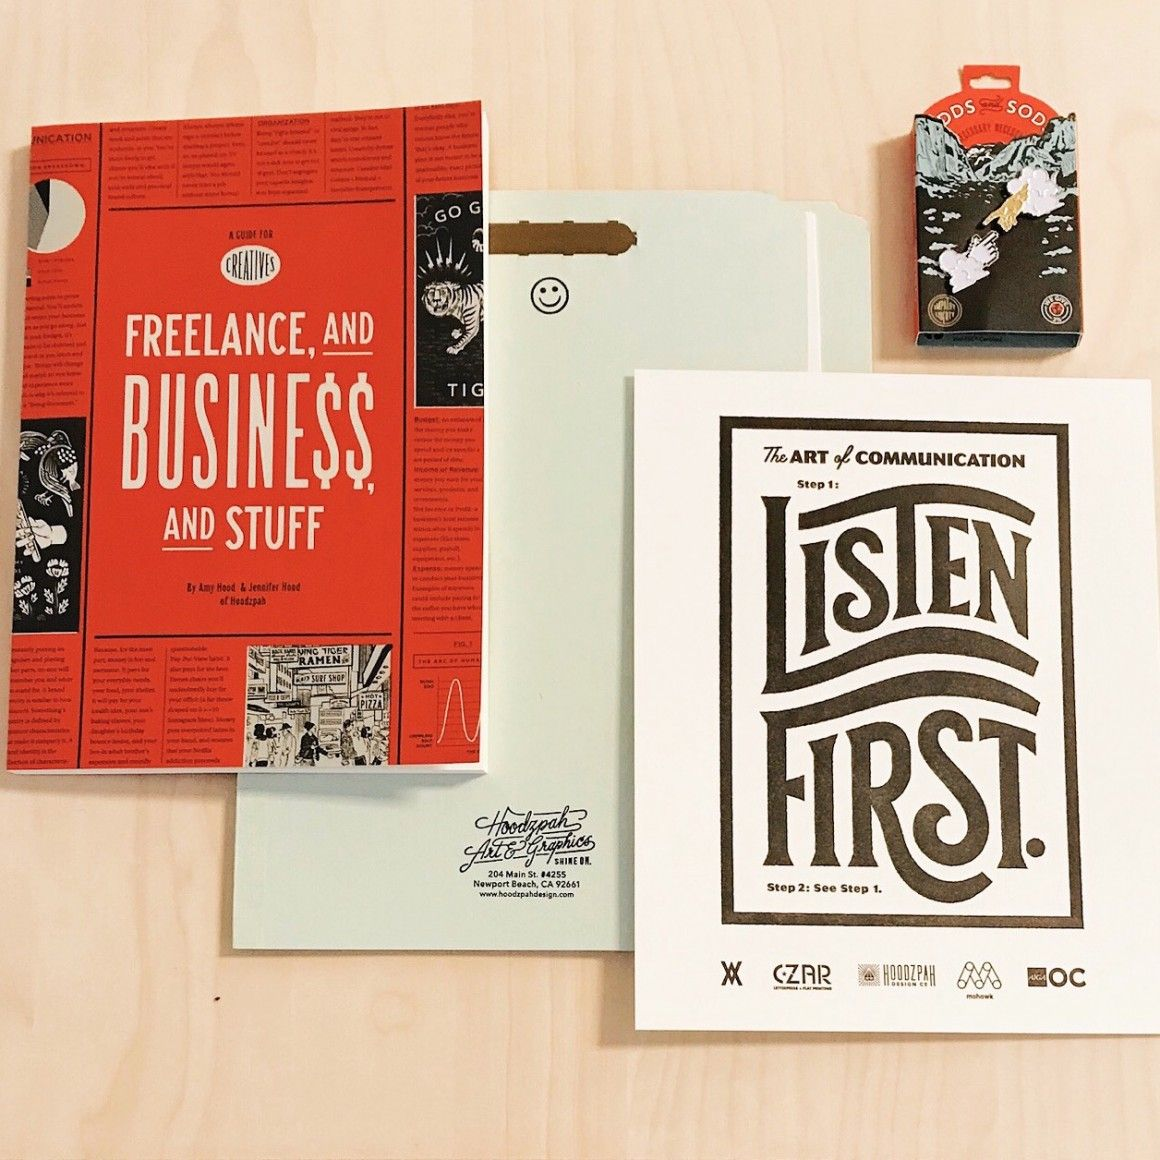 Shop Letterpress printing, Lettering, Starting your own